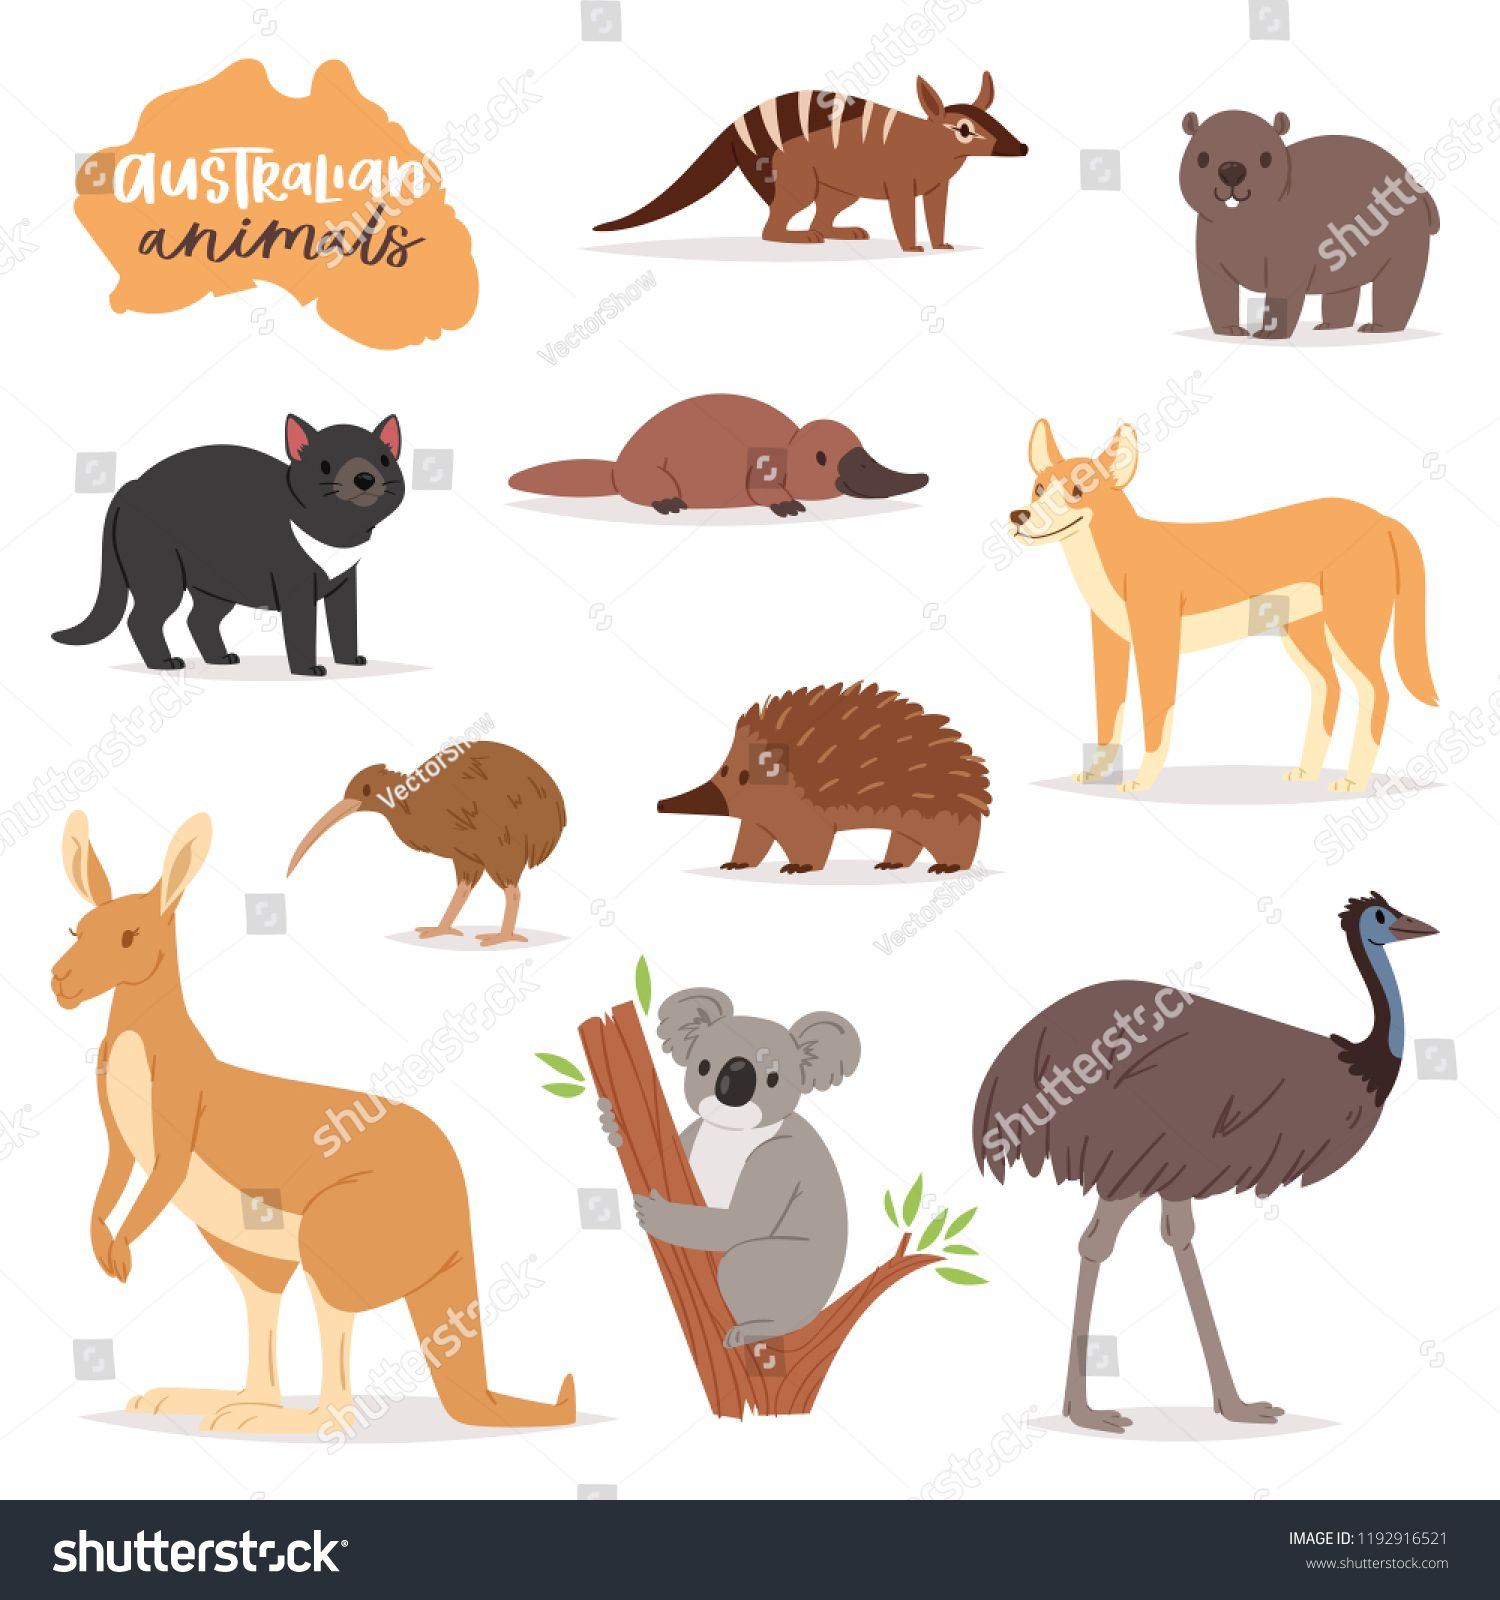 Australian Animals Vector Animalistic Character In Wildlife Australia Kangaroo Koala And Platypus Illustration Set Australian Animals Australia Animals Animals